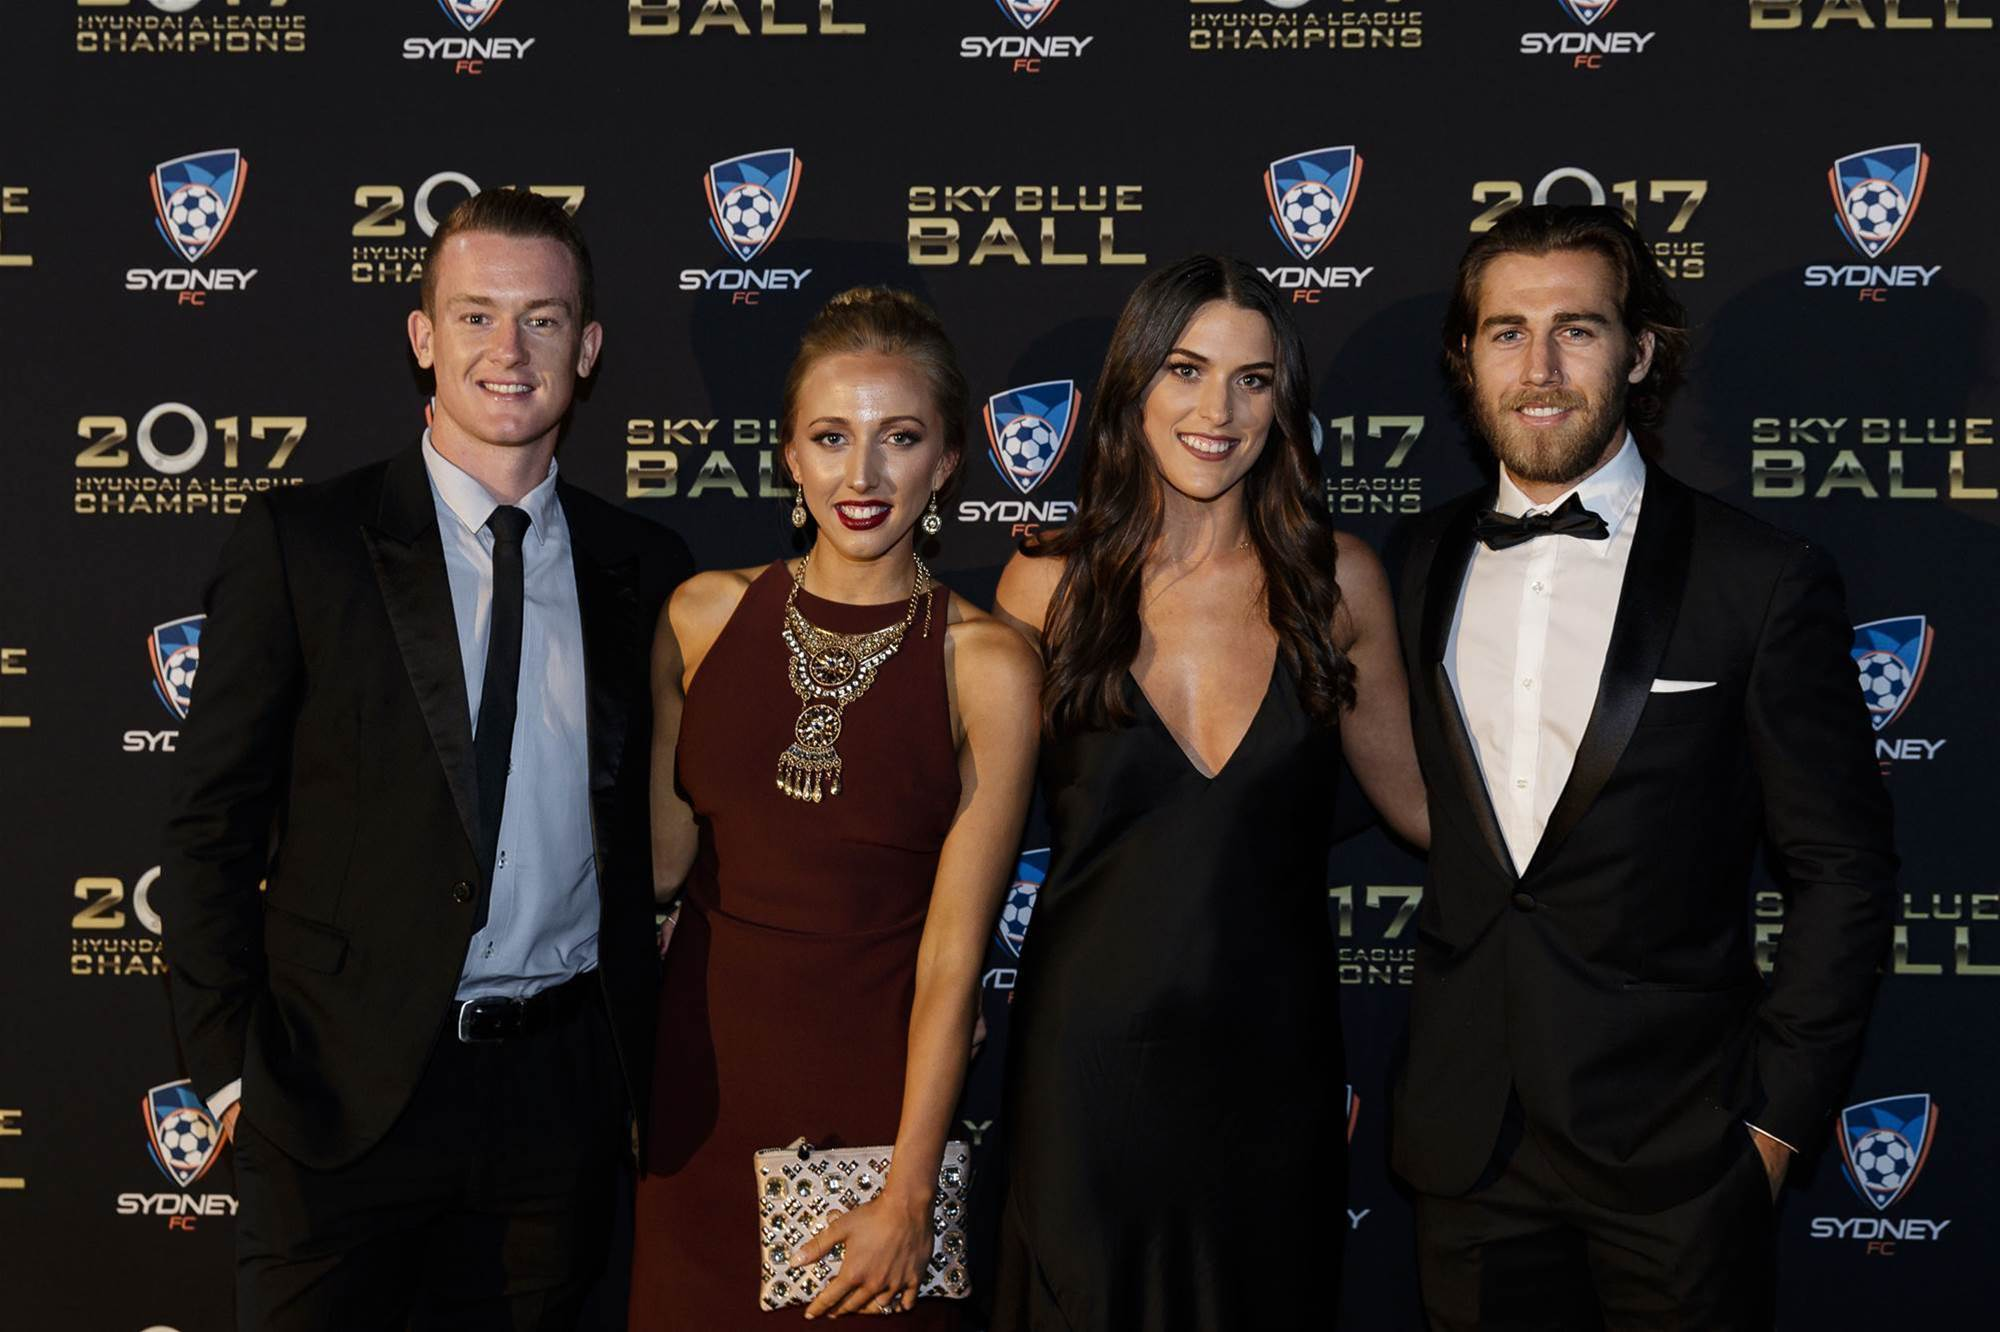 Bling pics: Sydney's Sky Blue Ball